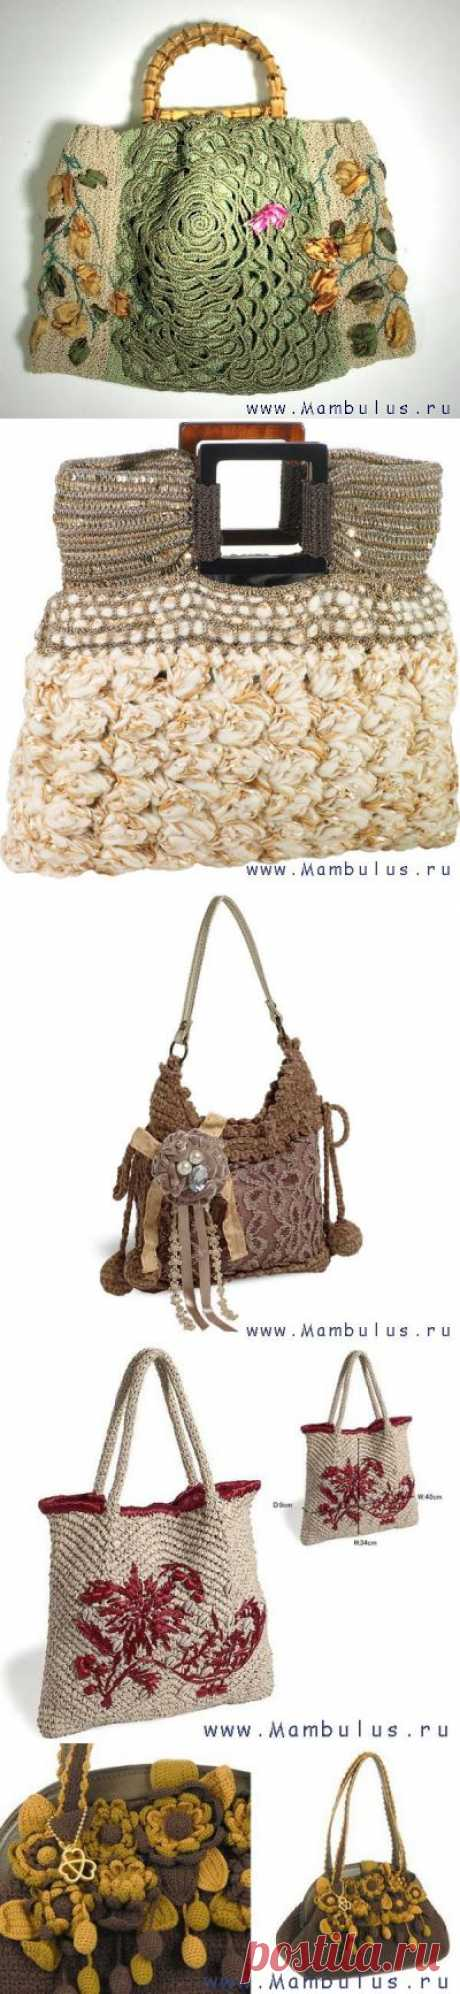 WORLD of NEEDLEWORK: KNITTED BAGS (bags the hands)-2